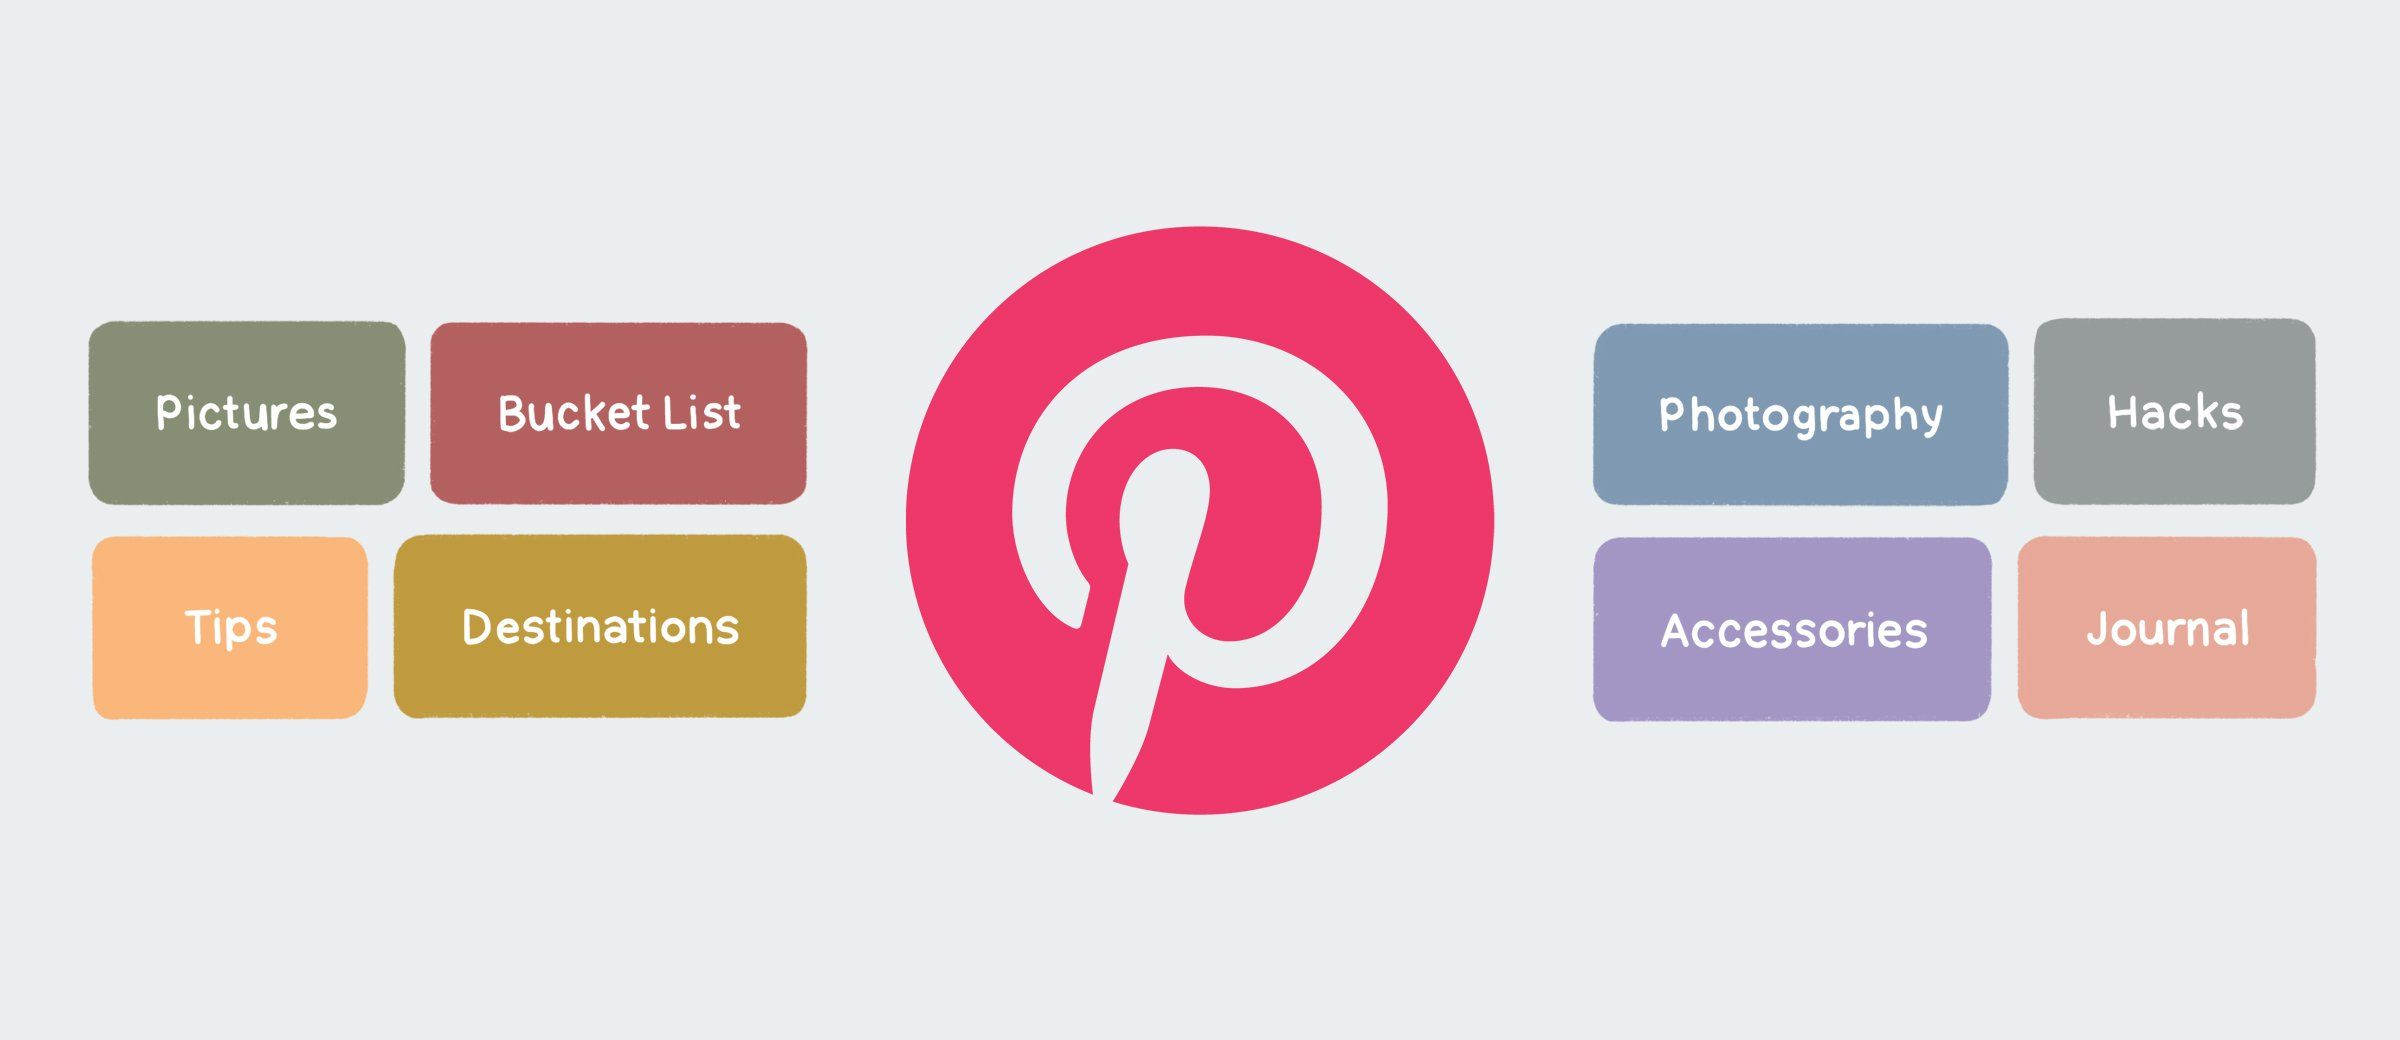 Most Popular Pinterest Categories and Which Ones to Use